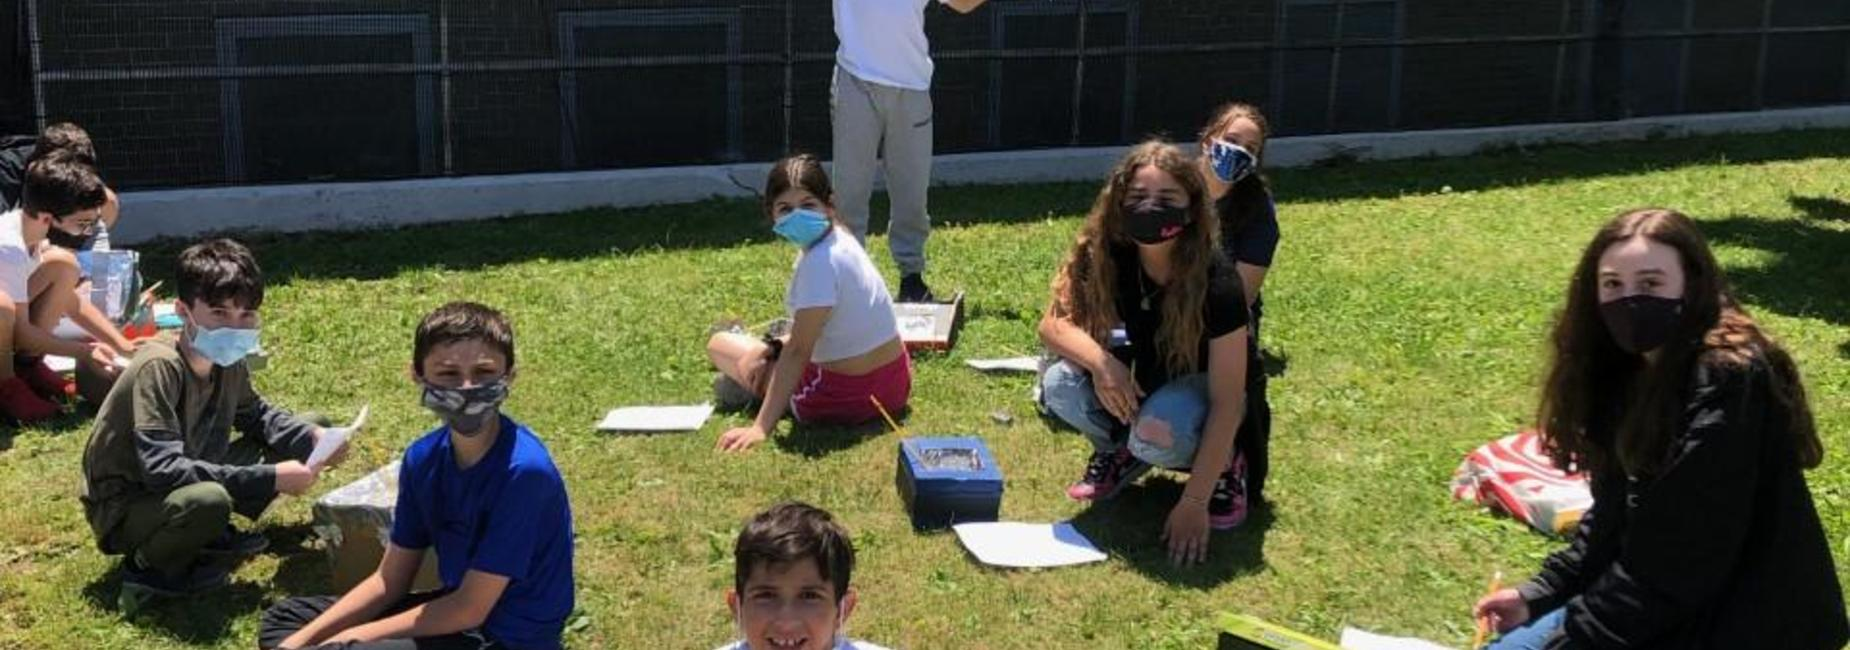 Students learning on the lawn at IS 7